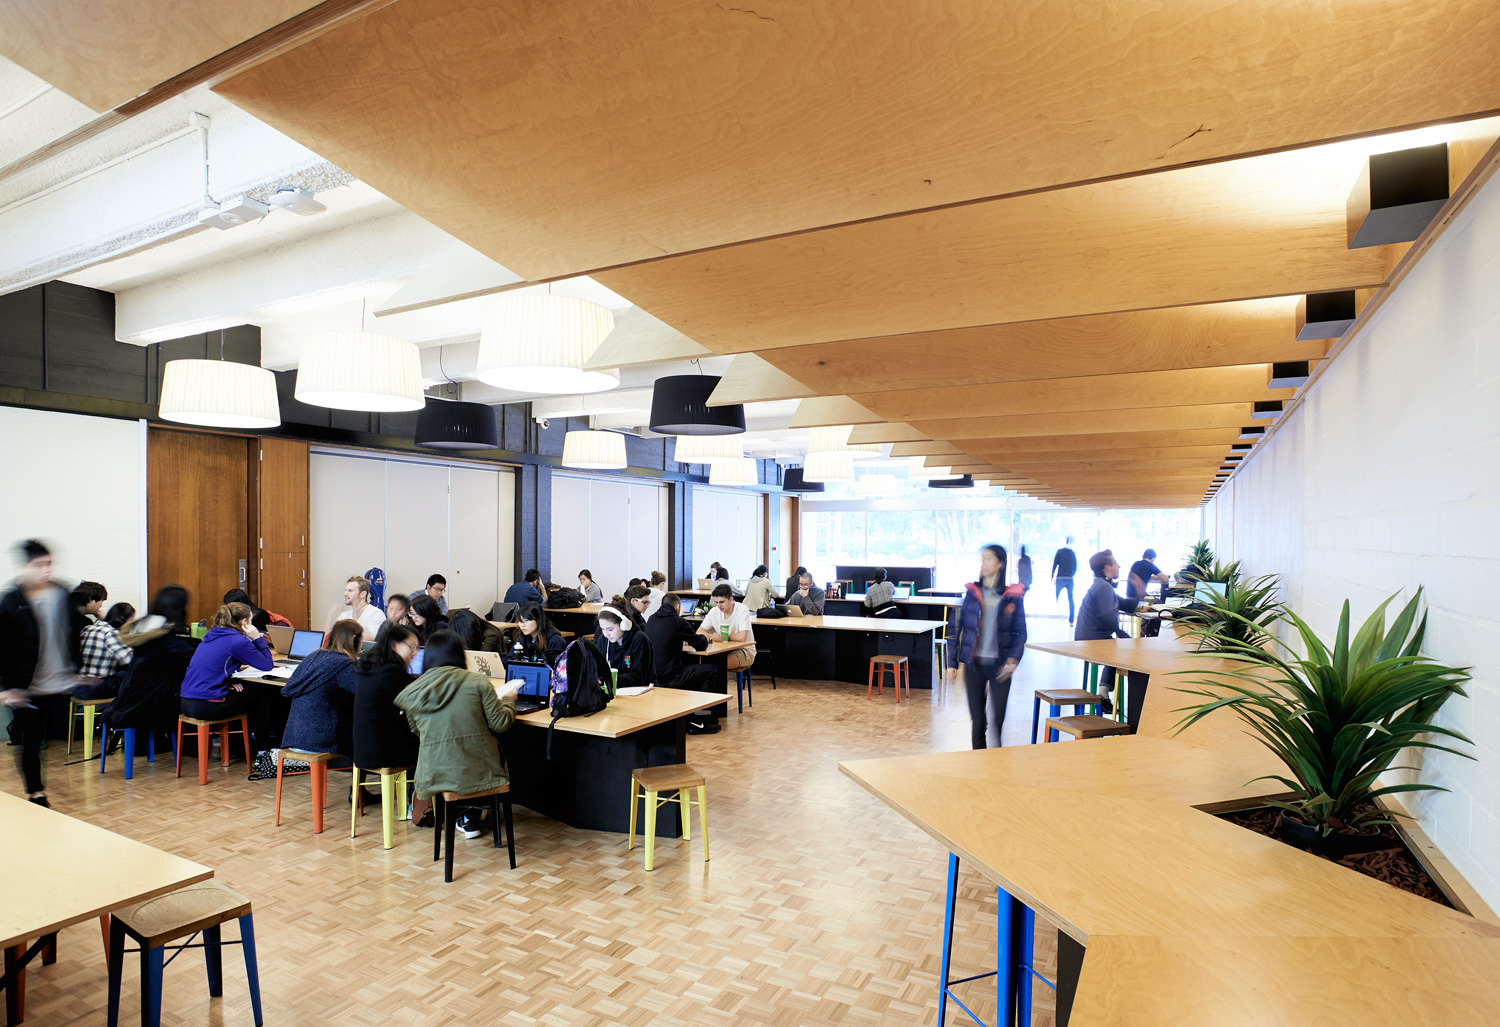 Monash University – Career Connect & Student Lounge